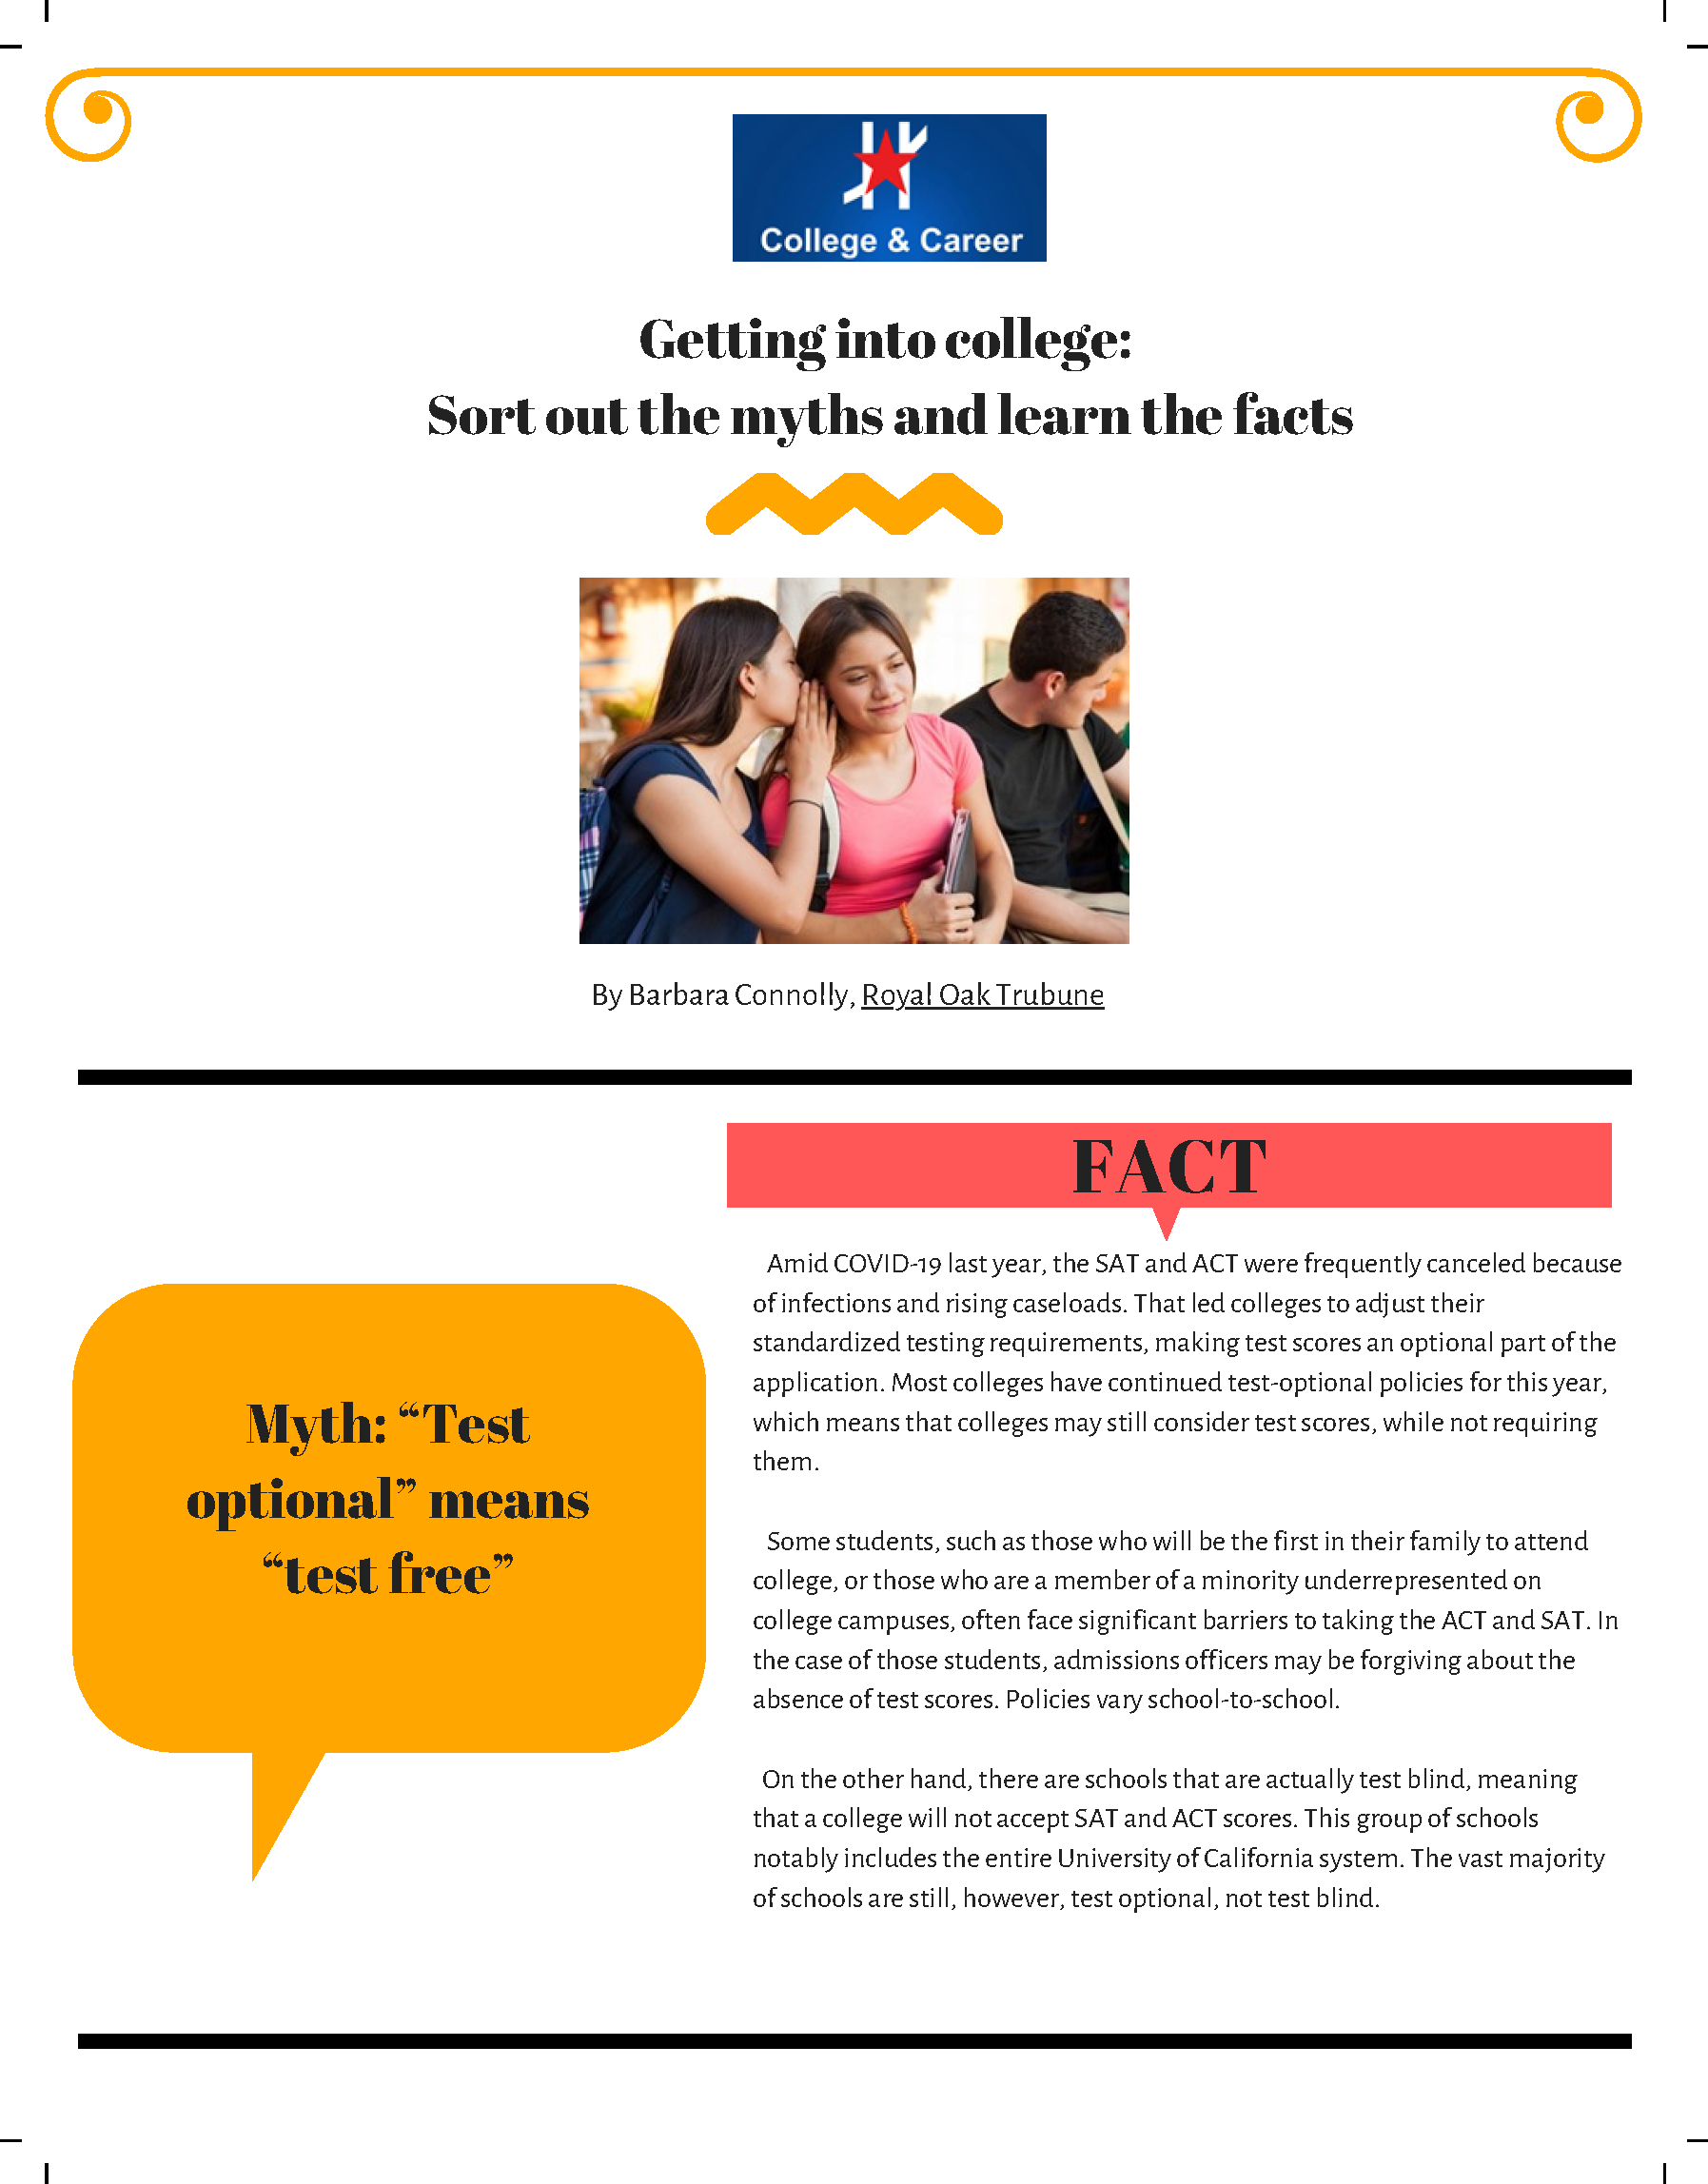 An image of page 1 of the Getting Into College Flyer